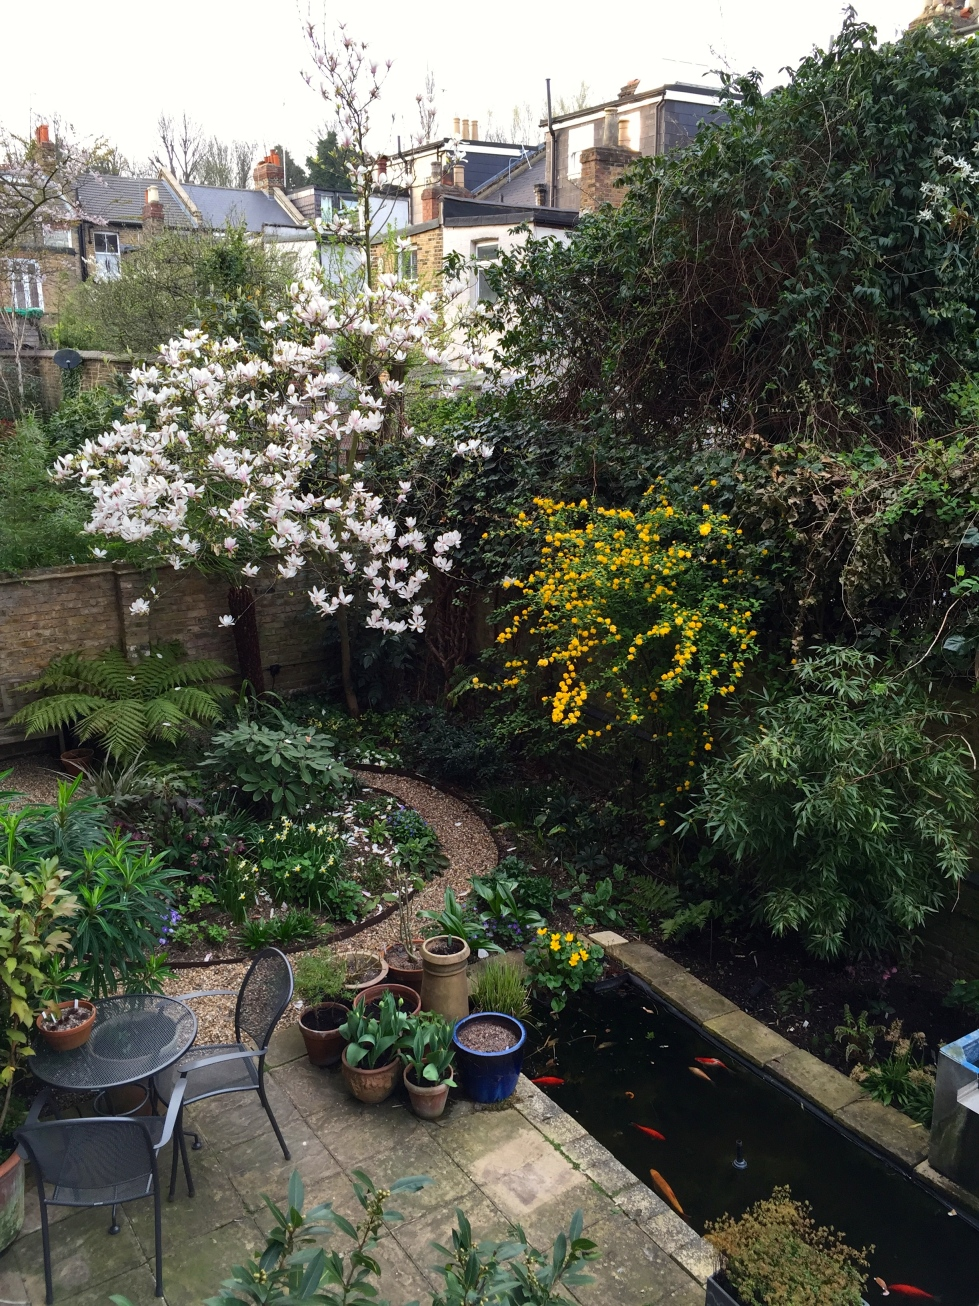 Our London garden, seen from above